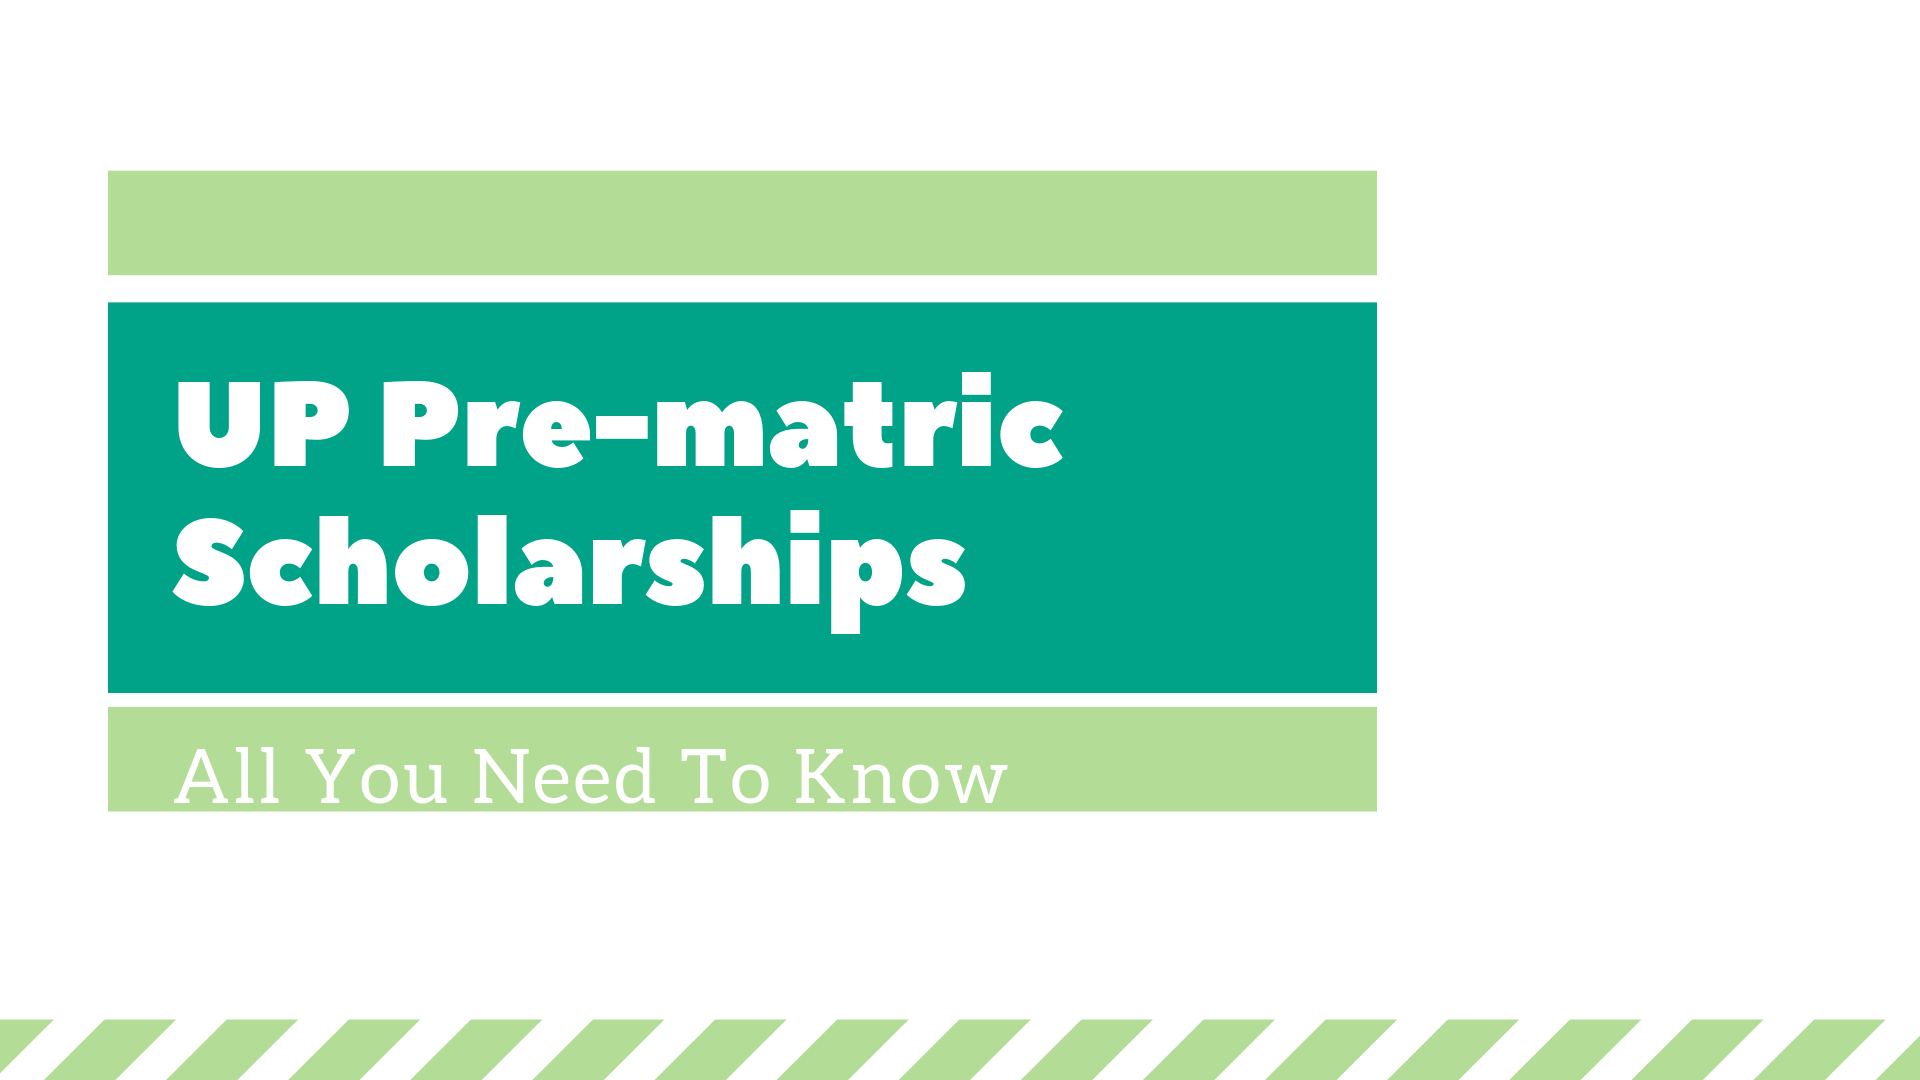 Up Pre Matric Scholarships In Uttar Pradesh Are For Students Who Are Studying In Class 9 And 10 Scholarships International Scholarships Key Dates